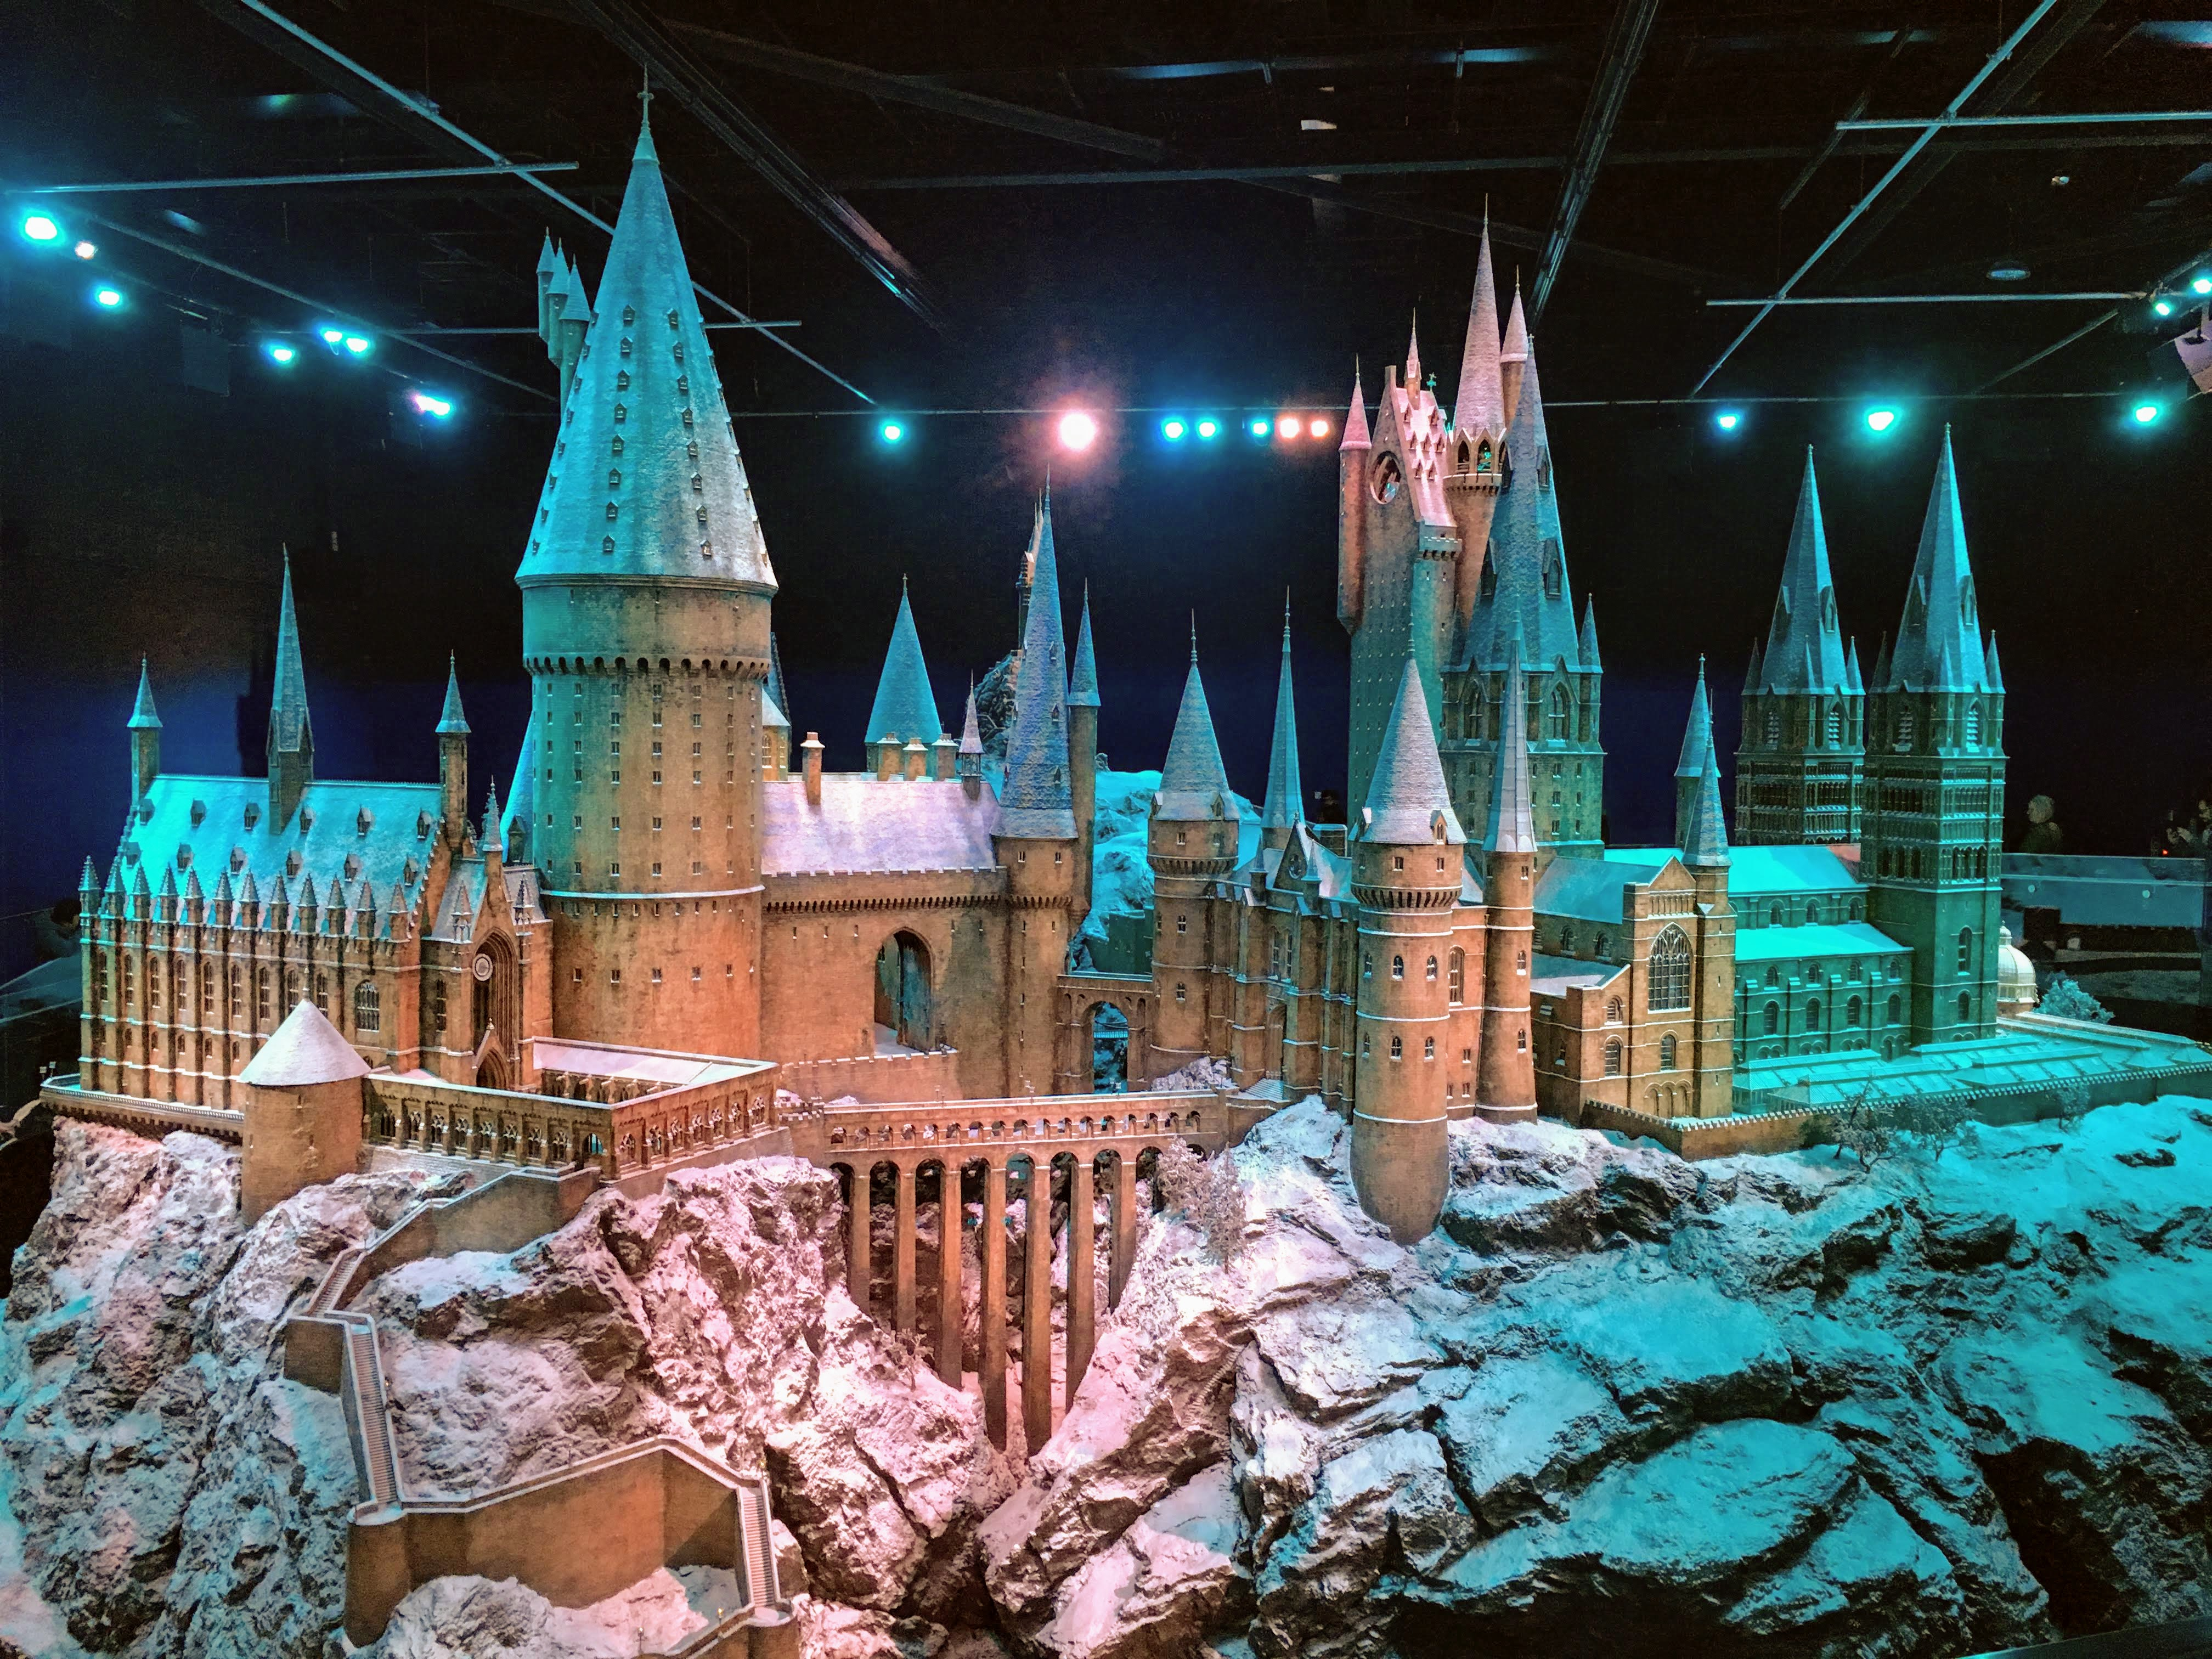 Harry Potter tour Warner Brother Studios Hogwarts model London england